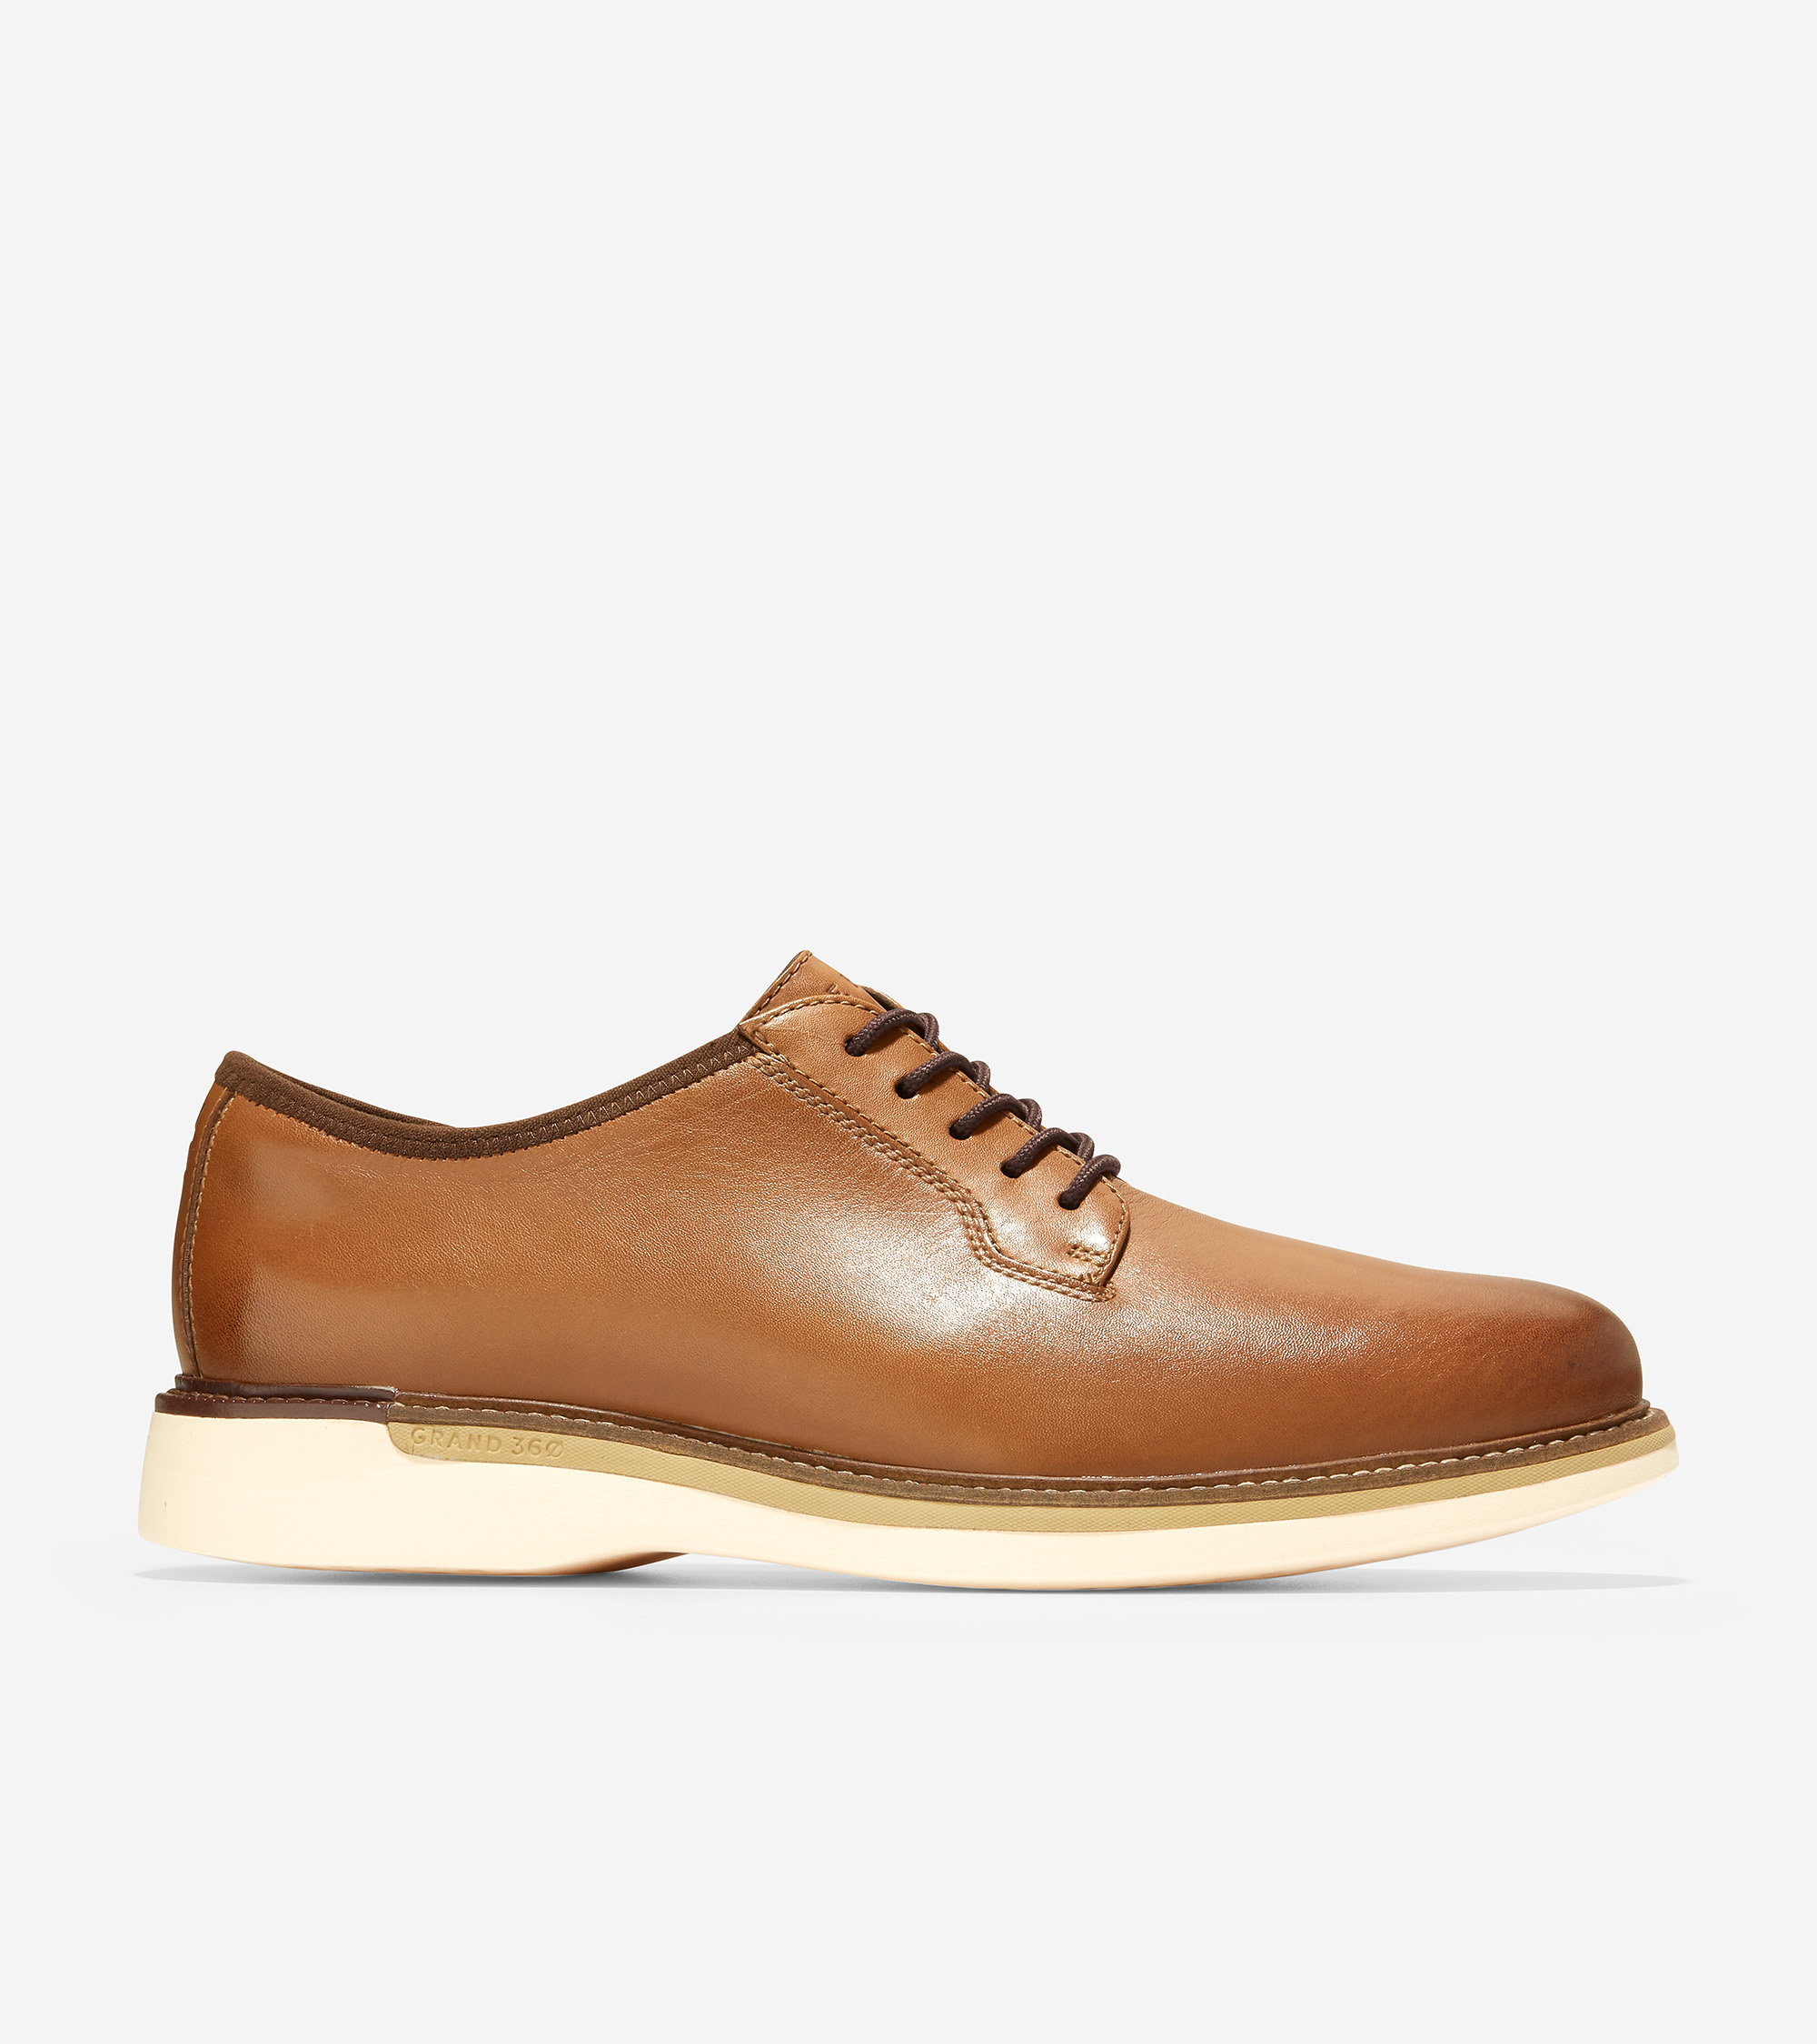 New Arrivals - Cole Haan Oxfords